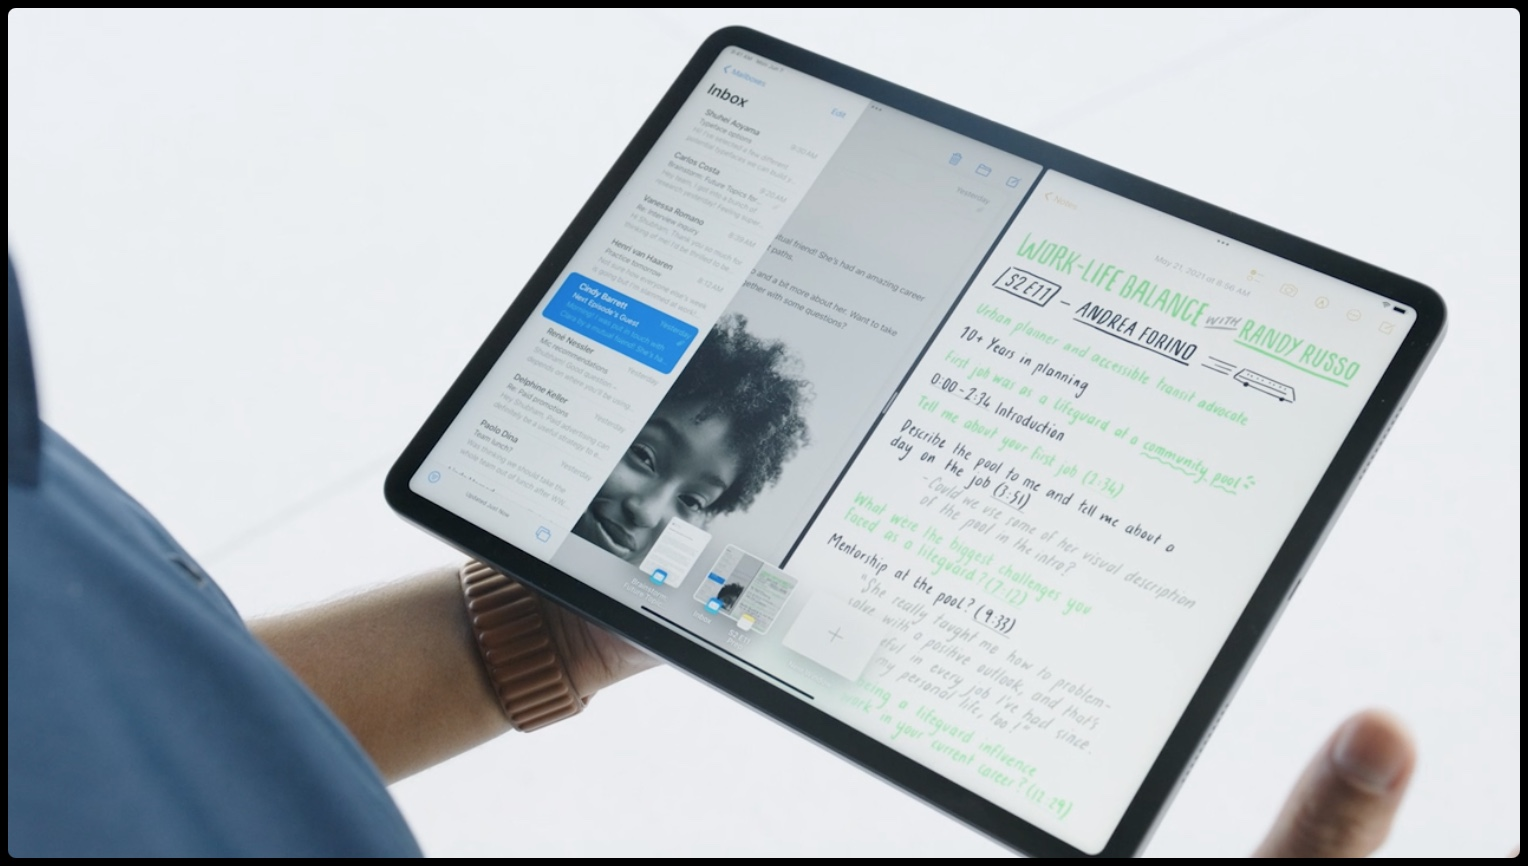 An image showing an iPad Pro with a new Shelf multitasking feature in iPadOS 15